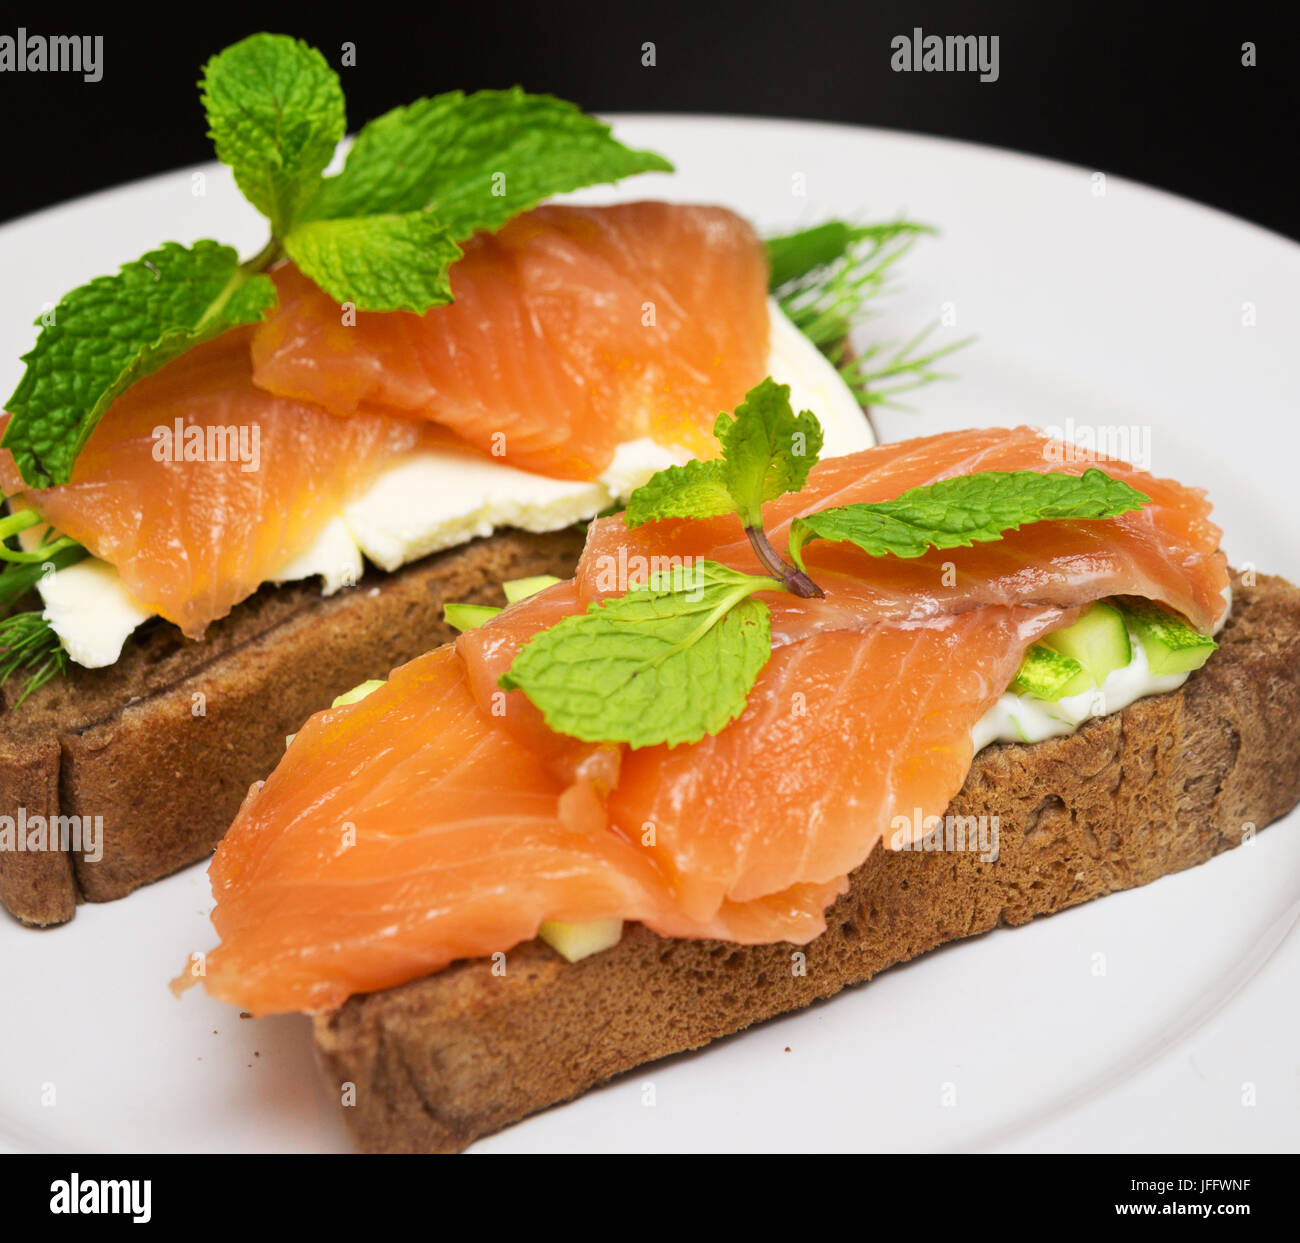 sandwiche with red fish - Stock Image